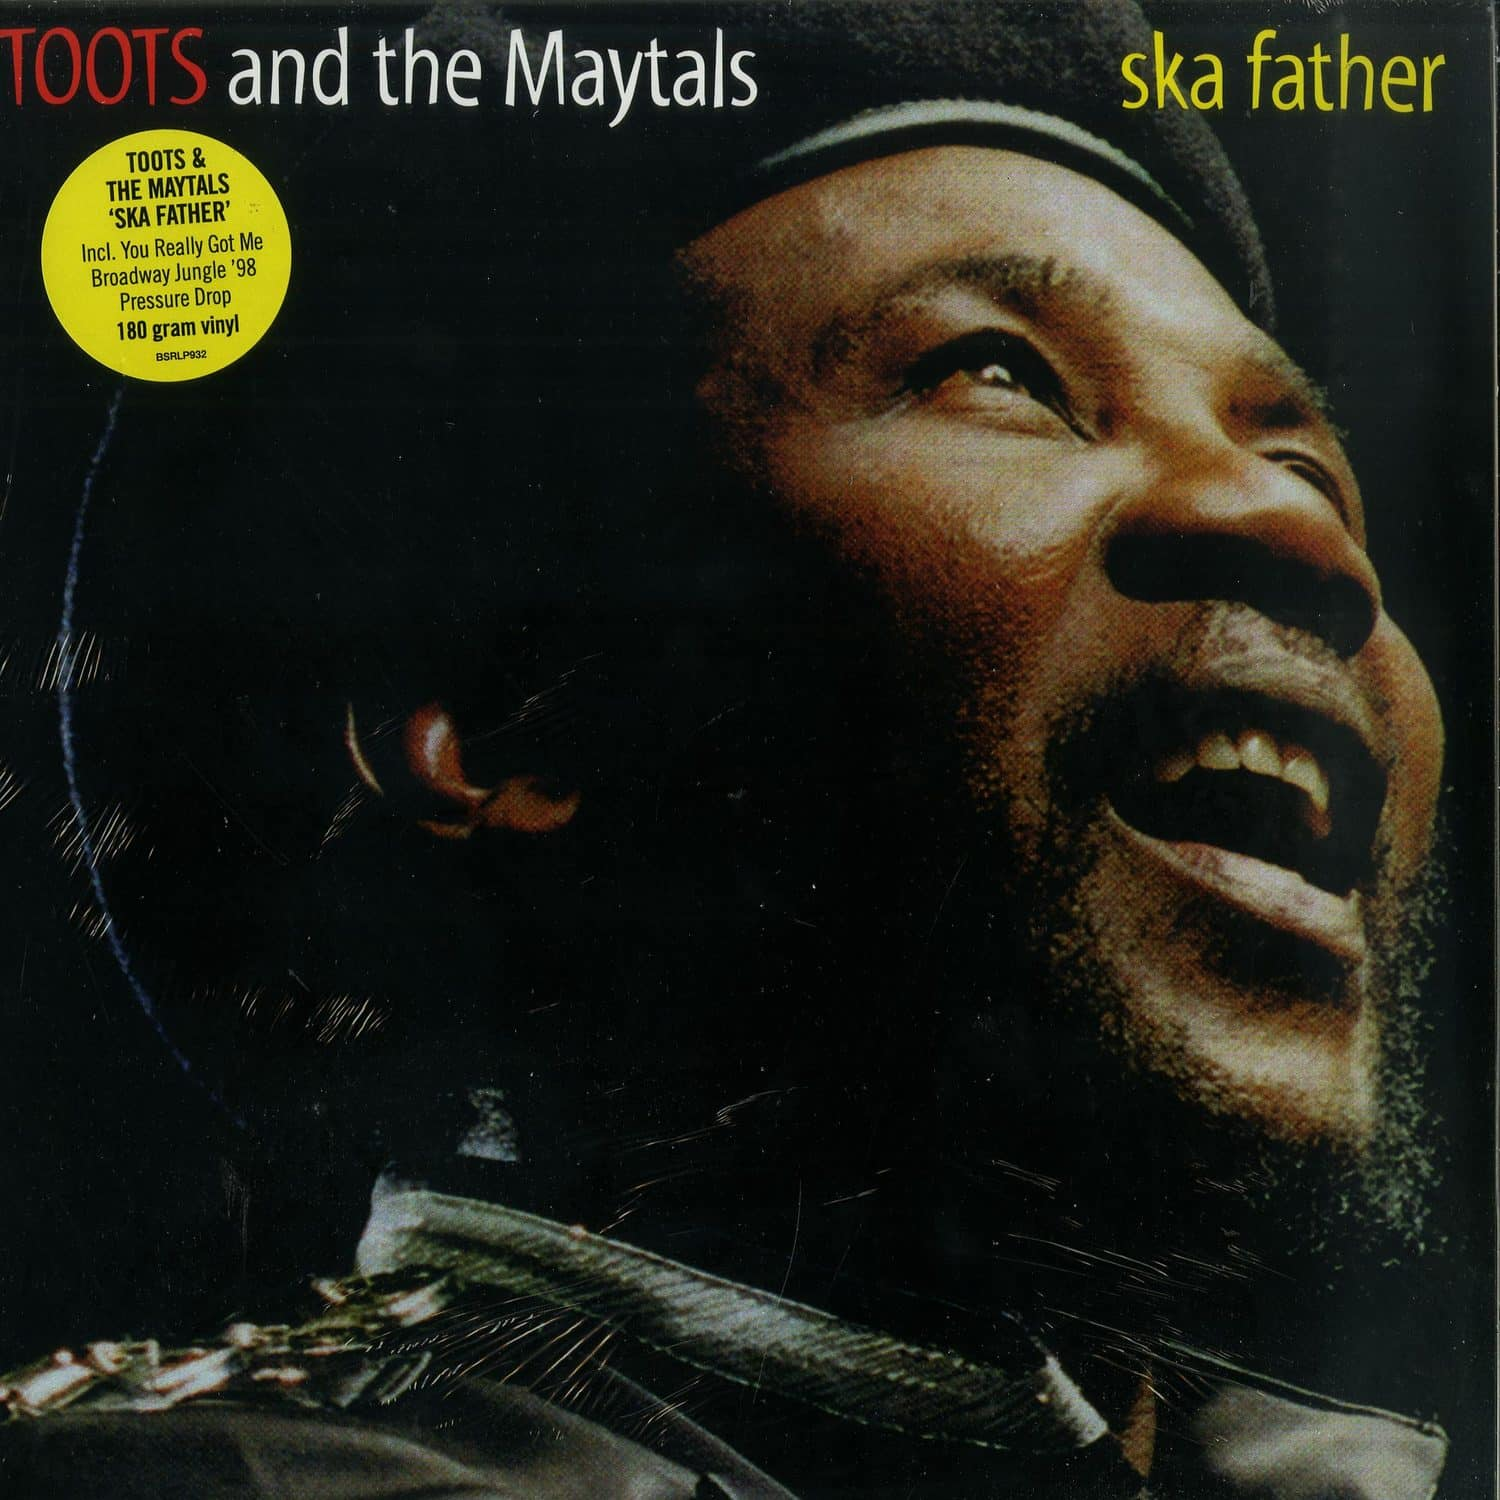 Toots & The Maytals - SKA FATHER